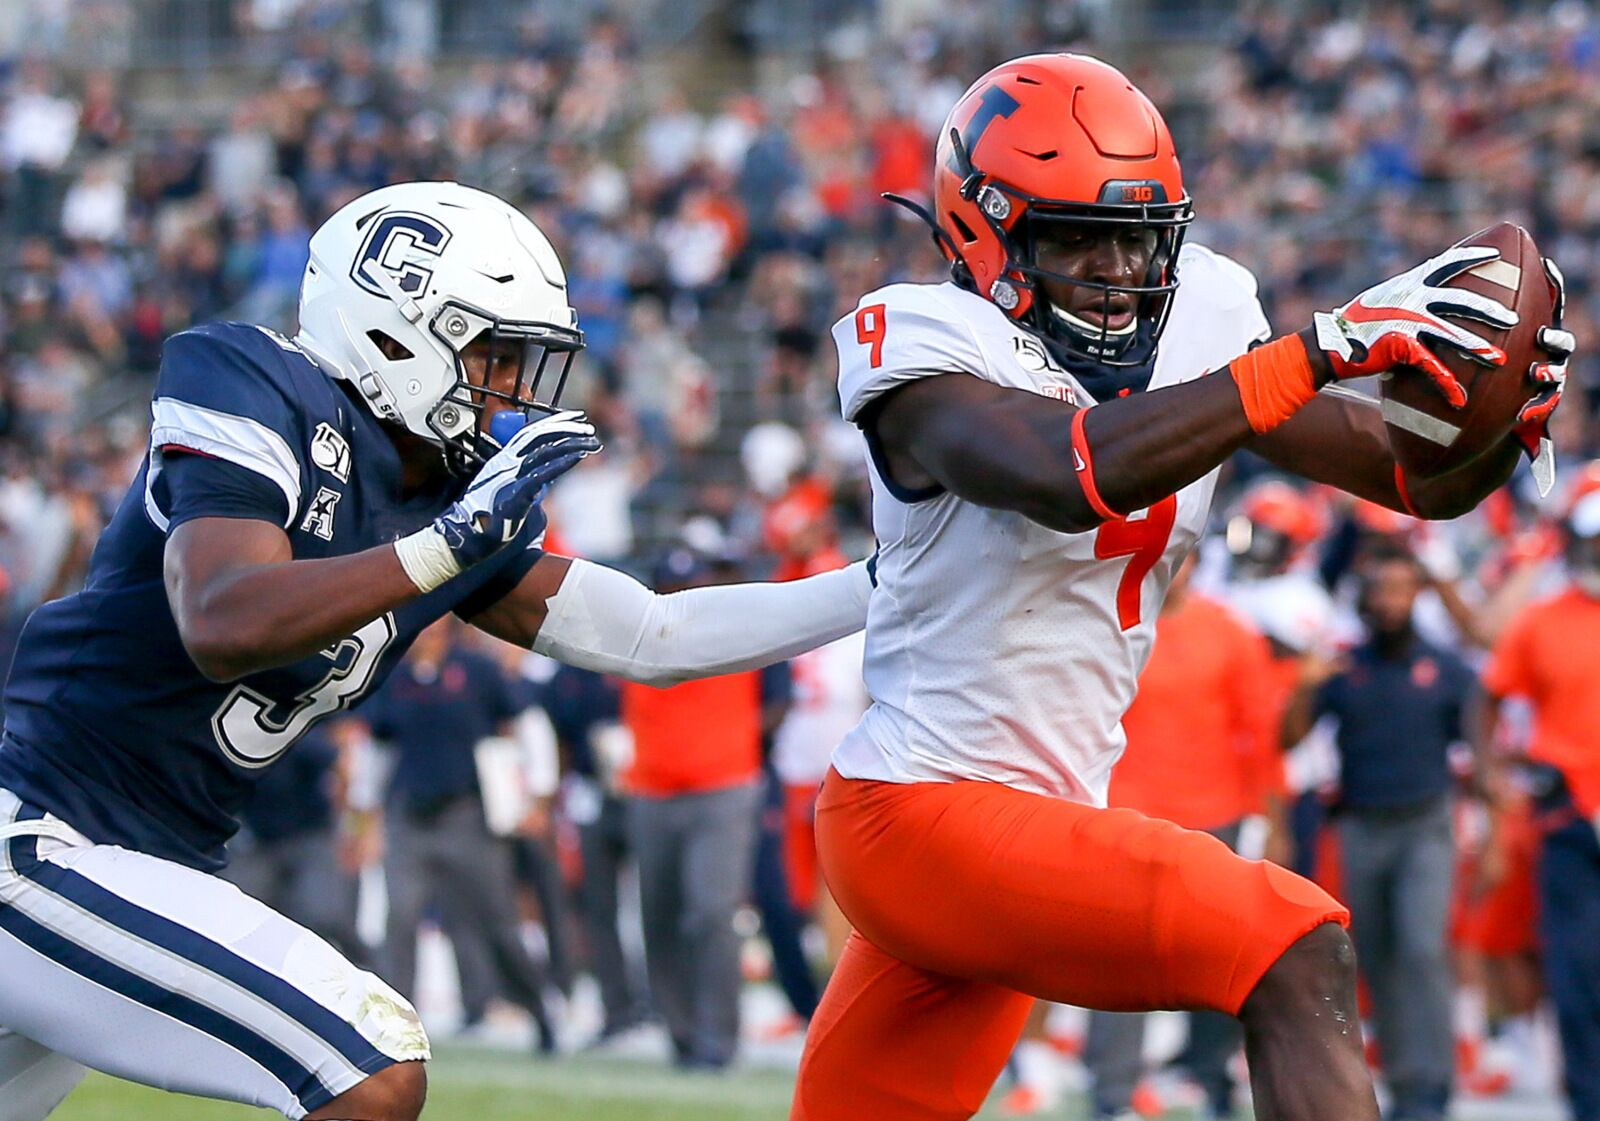 Illinois Football: Wins are still there for the Illini in 2019